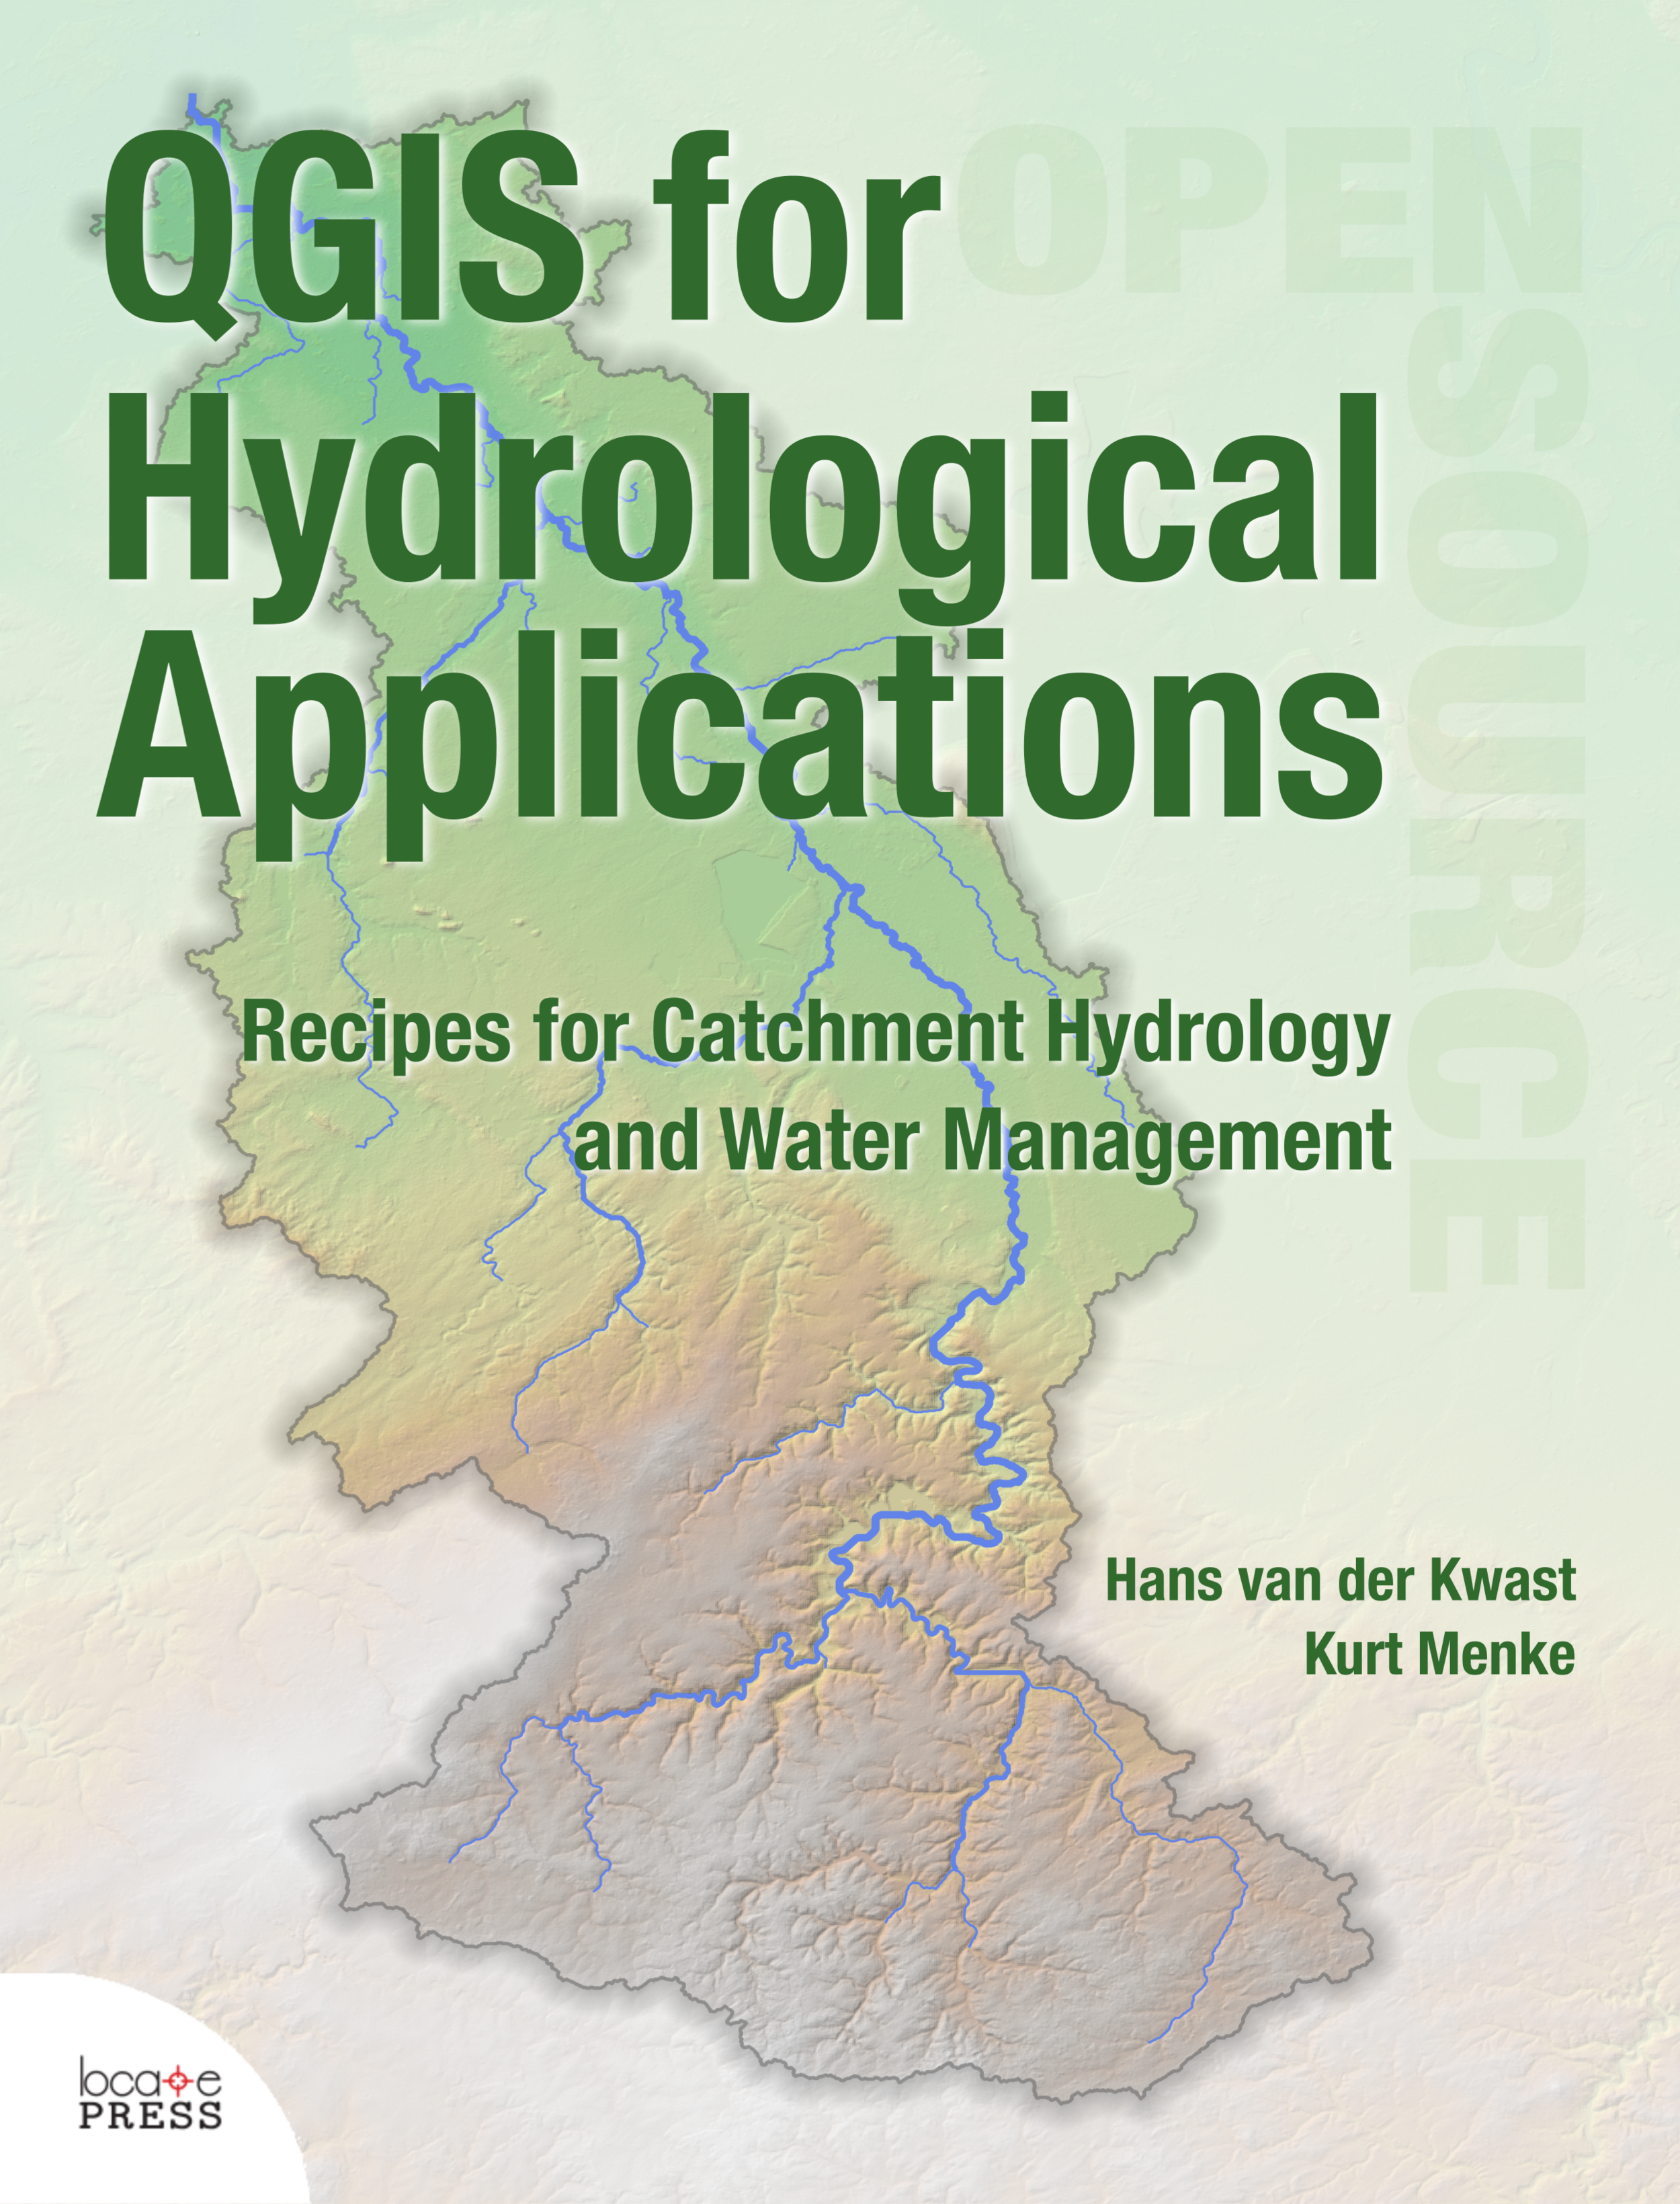 QGIS_Hydro_Cover_cropped.png